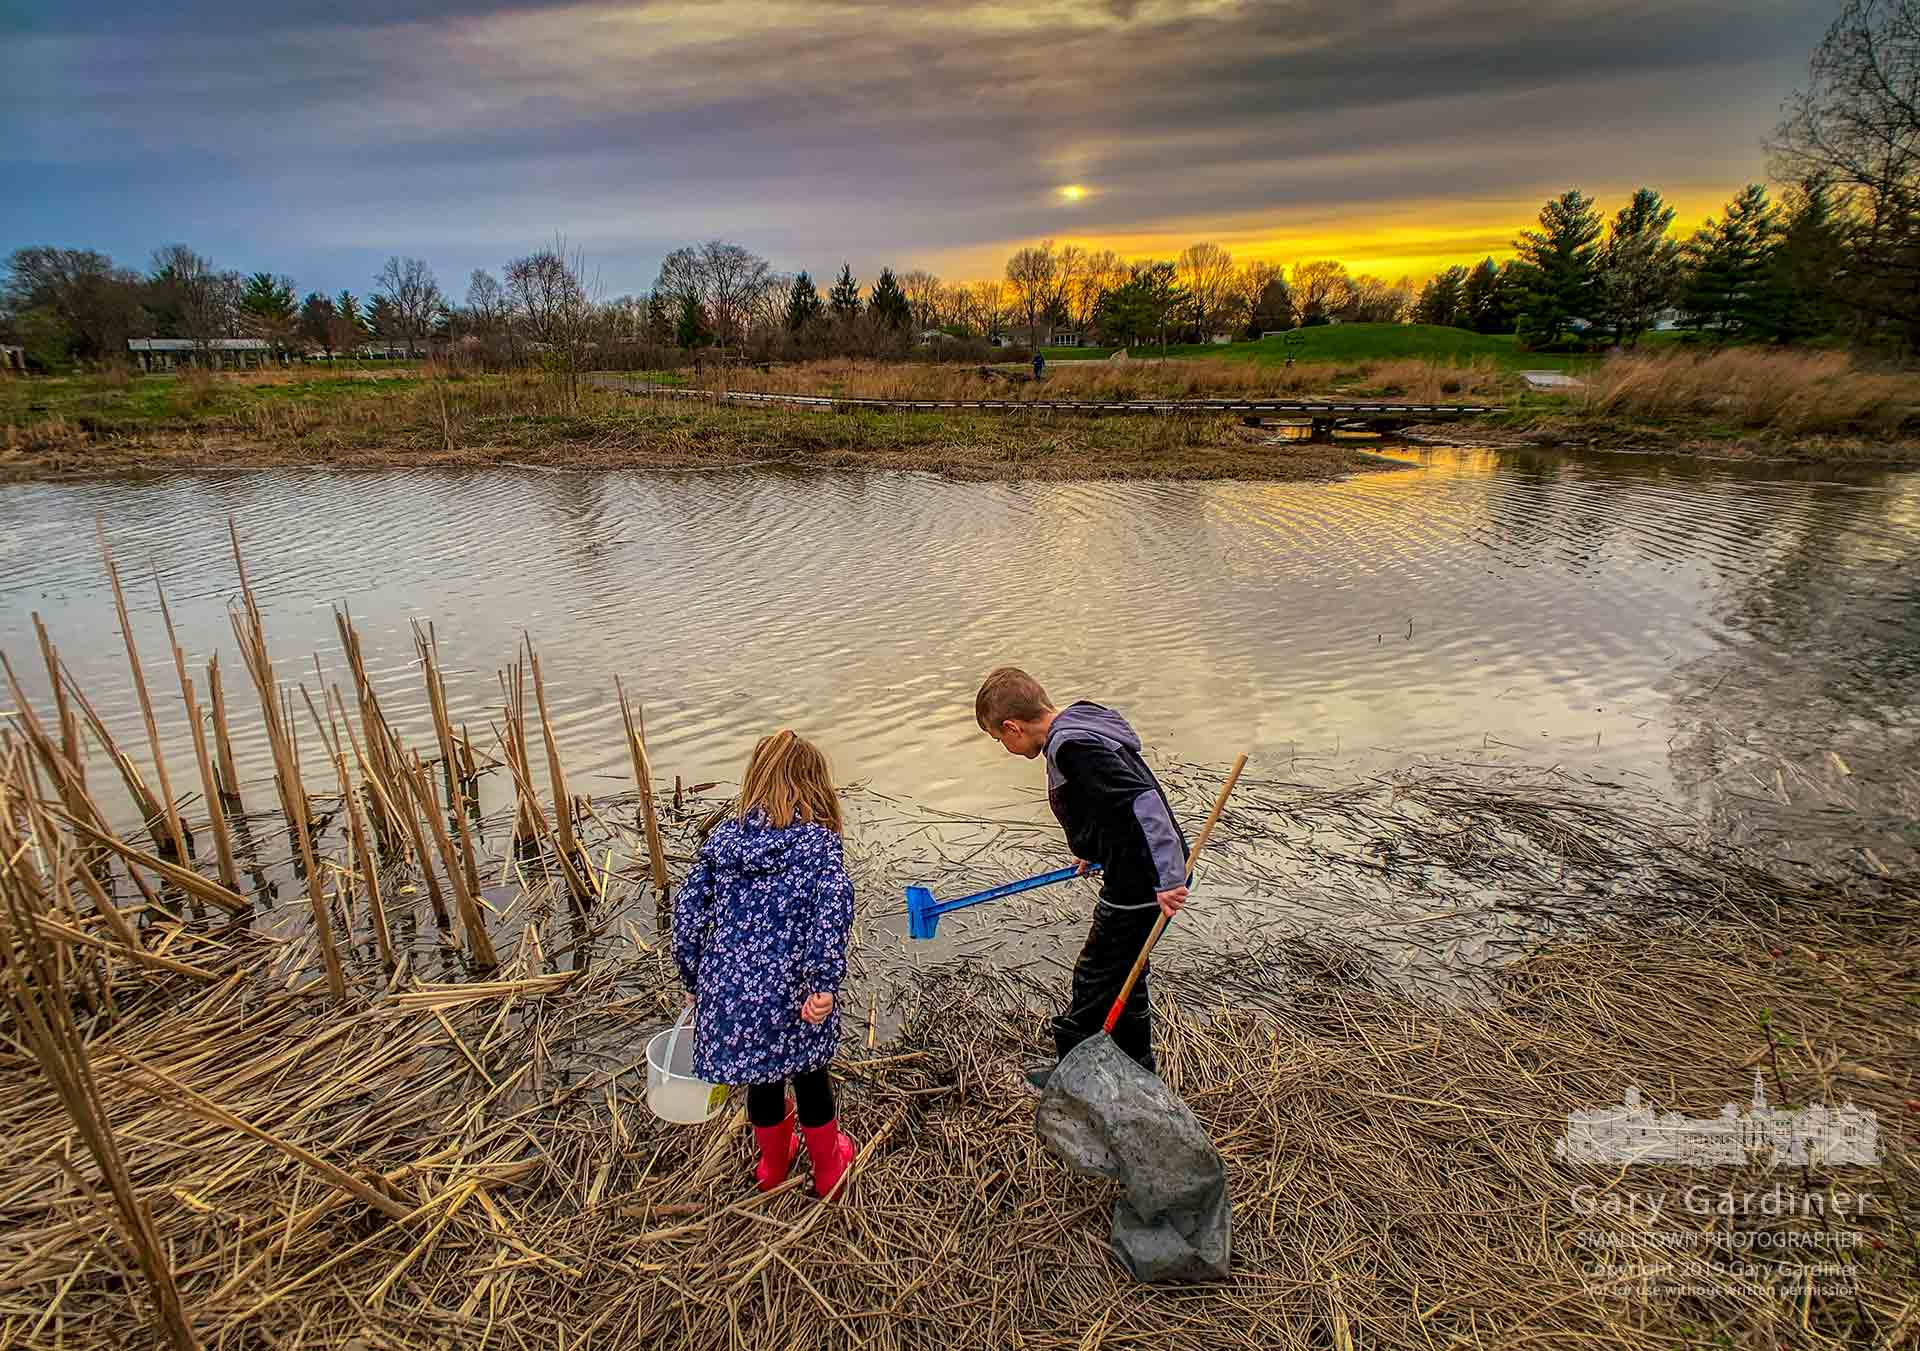 Children return a pair of mating frogs to the Highlands Park wetlands after showing them to their parents and a naturalist who identified their activity during the first Frog Friday at the park. My Final Photo for April 12, 2019.